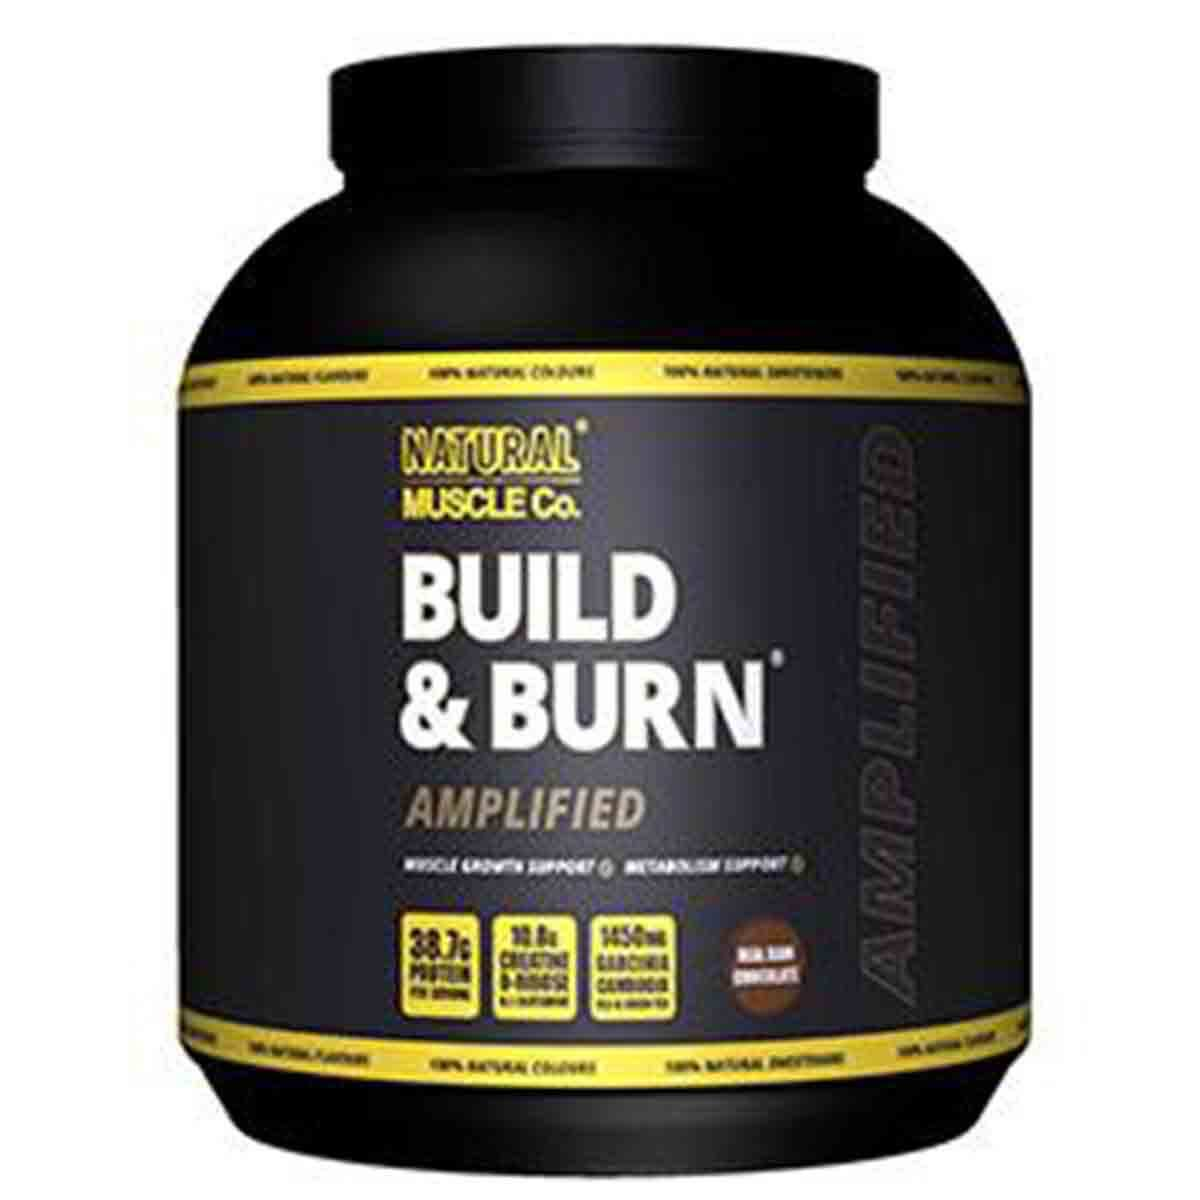 Build & Burn Amplified Natural Muscle Company